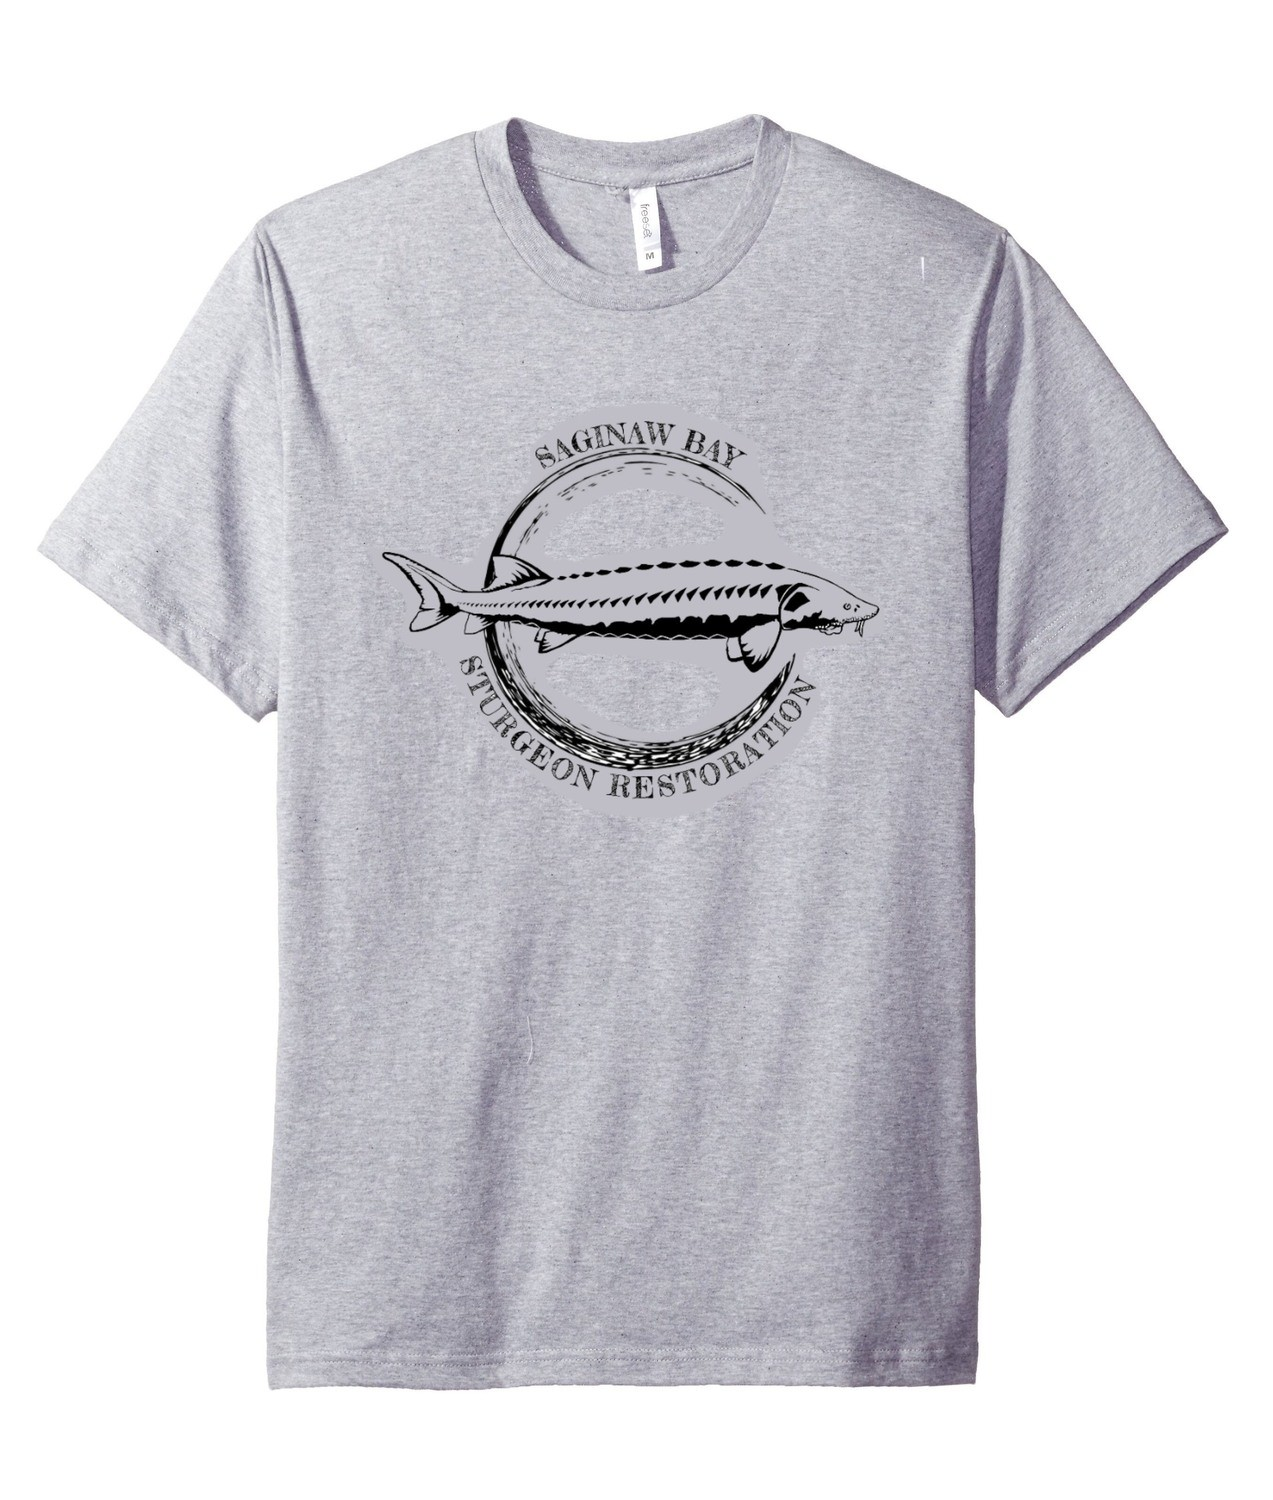 Saginaw Bay Sturgeon Restoration tshirt (with scutes on back!)